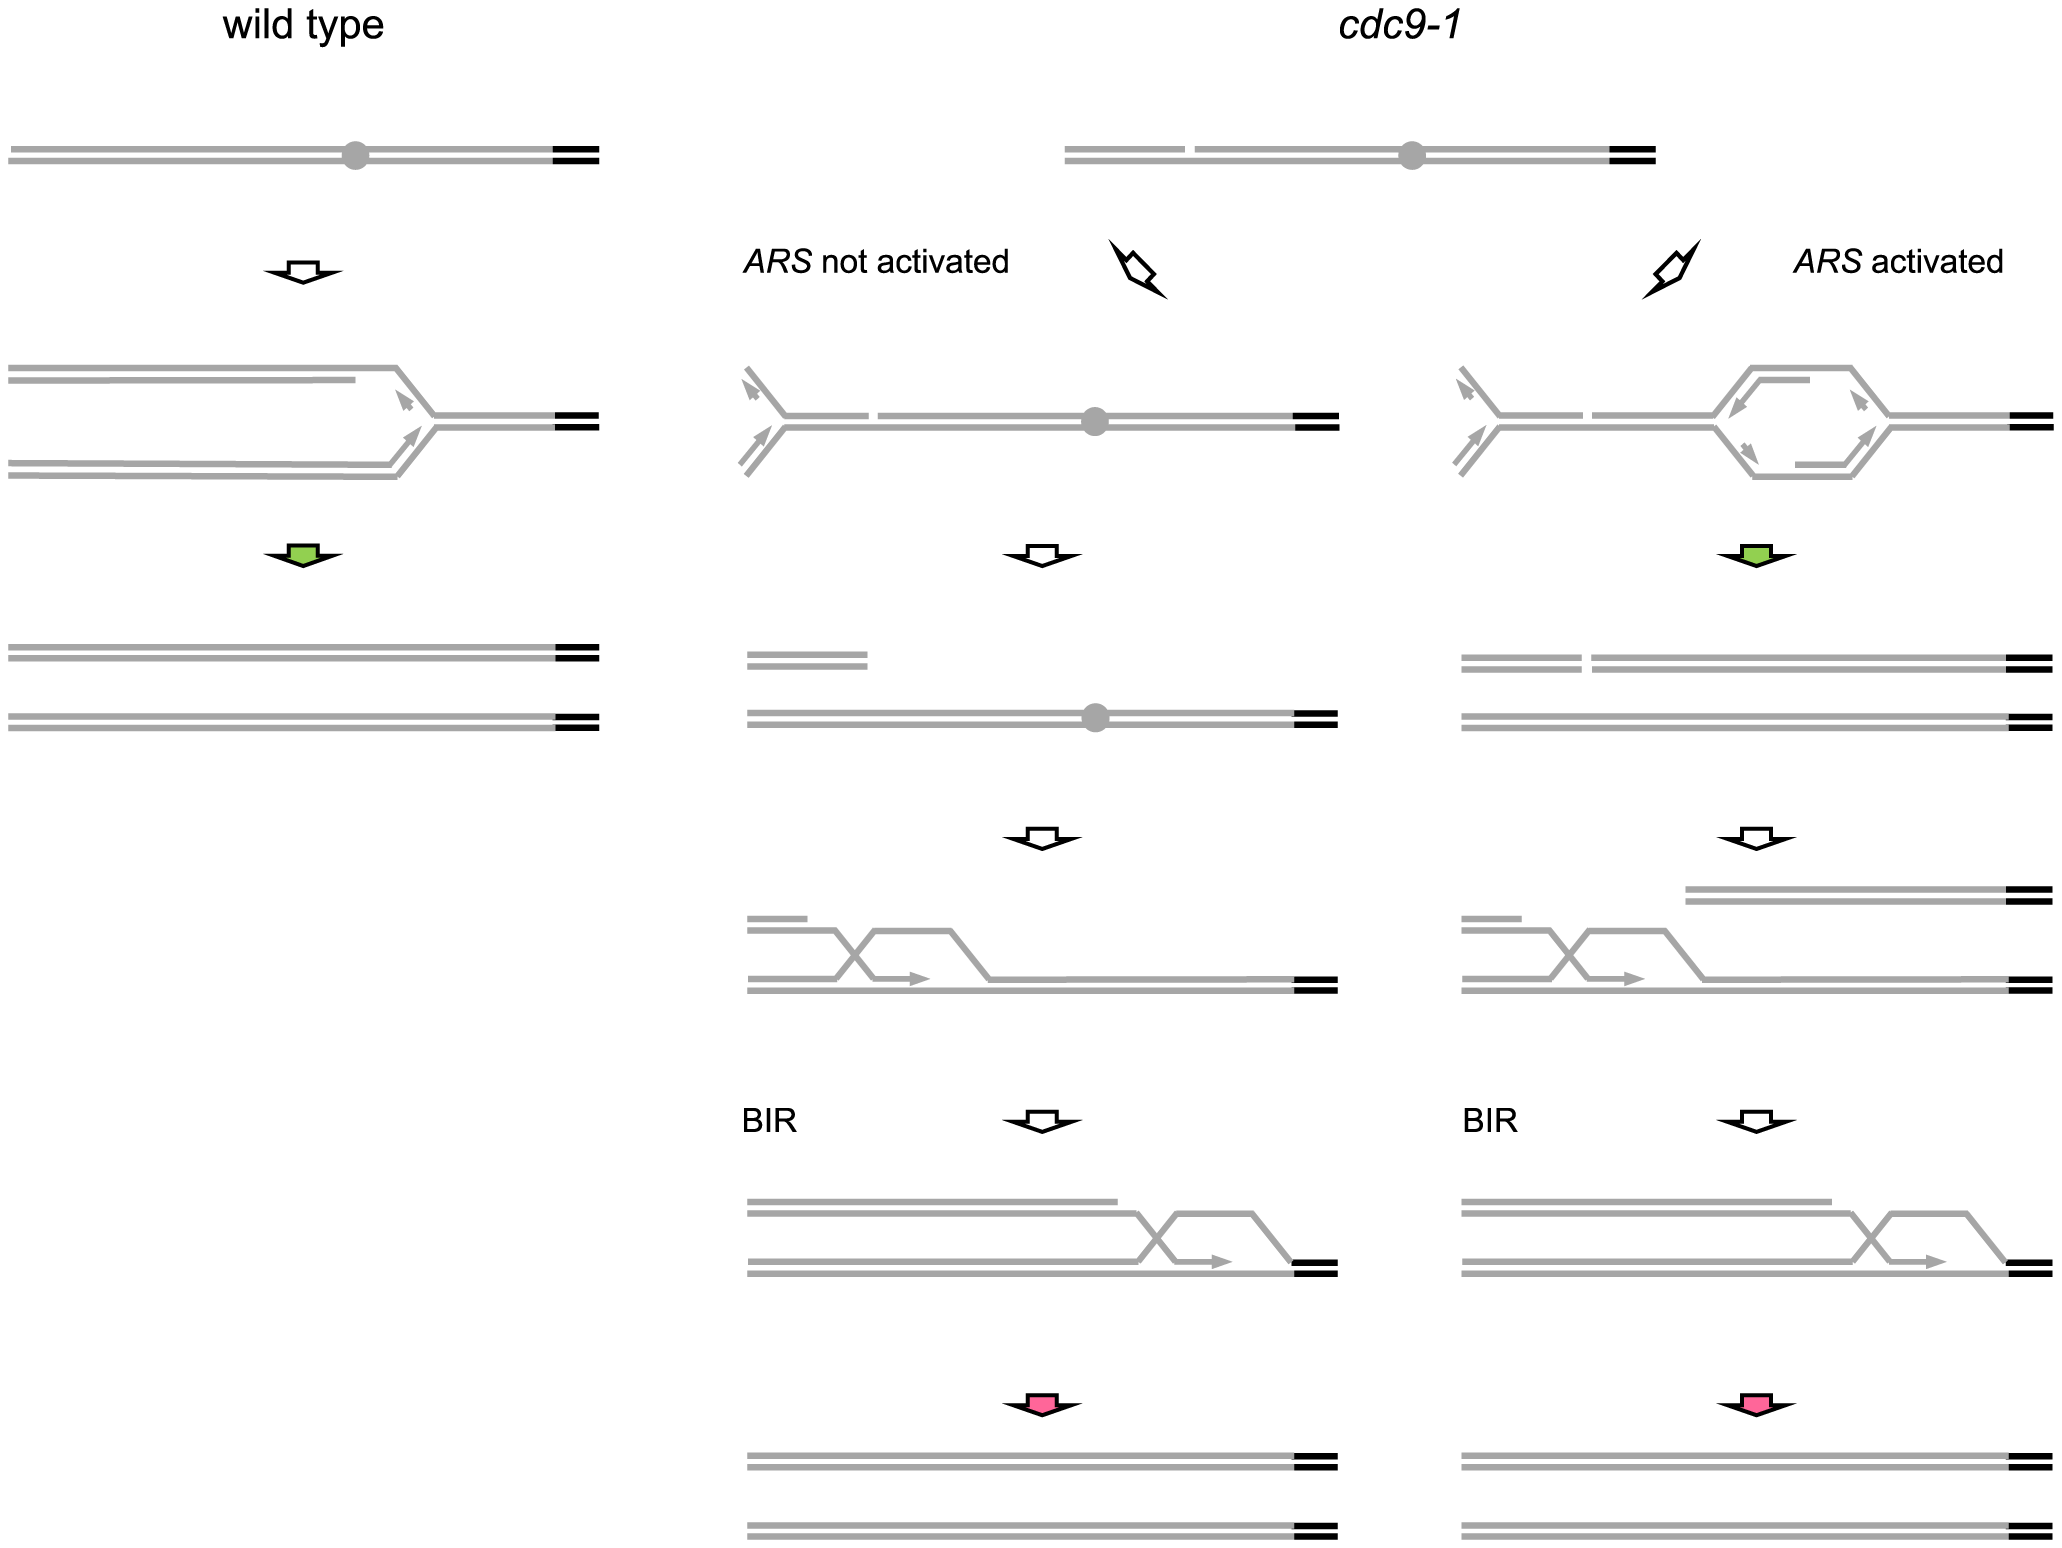 Possible mechanisms for replication-coupled telomere synthesis by telomerase in <i>CDC9</i> and <i>cdc9-1</i> cells.